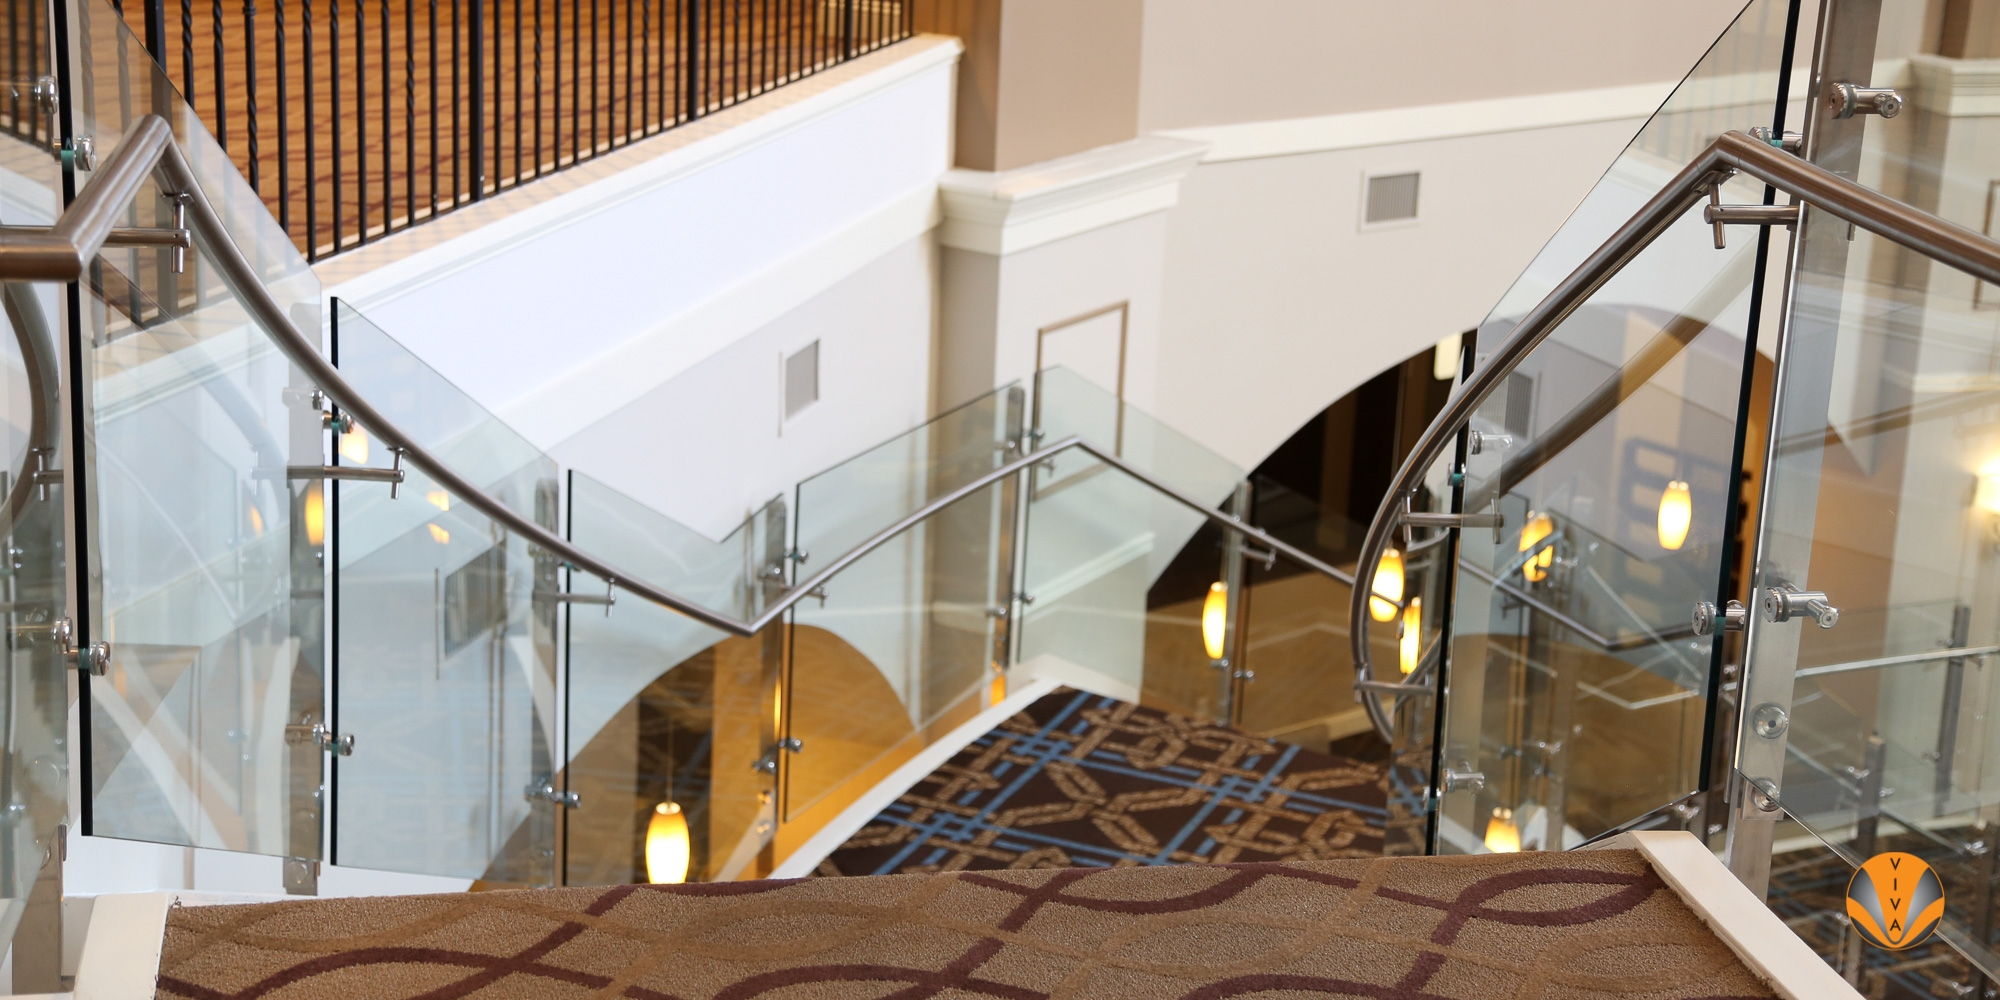 Blade Balcony Glass Railing Sheraton Hotels Resorts Delaware   Glass Stair Railings Interior   Indoor   Architectural Modern Wood Stair   Stair Banister   Stainless Steel   Glass Balustrade